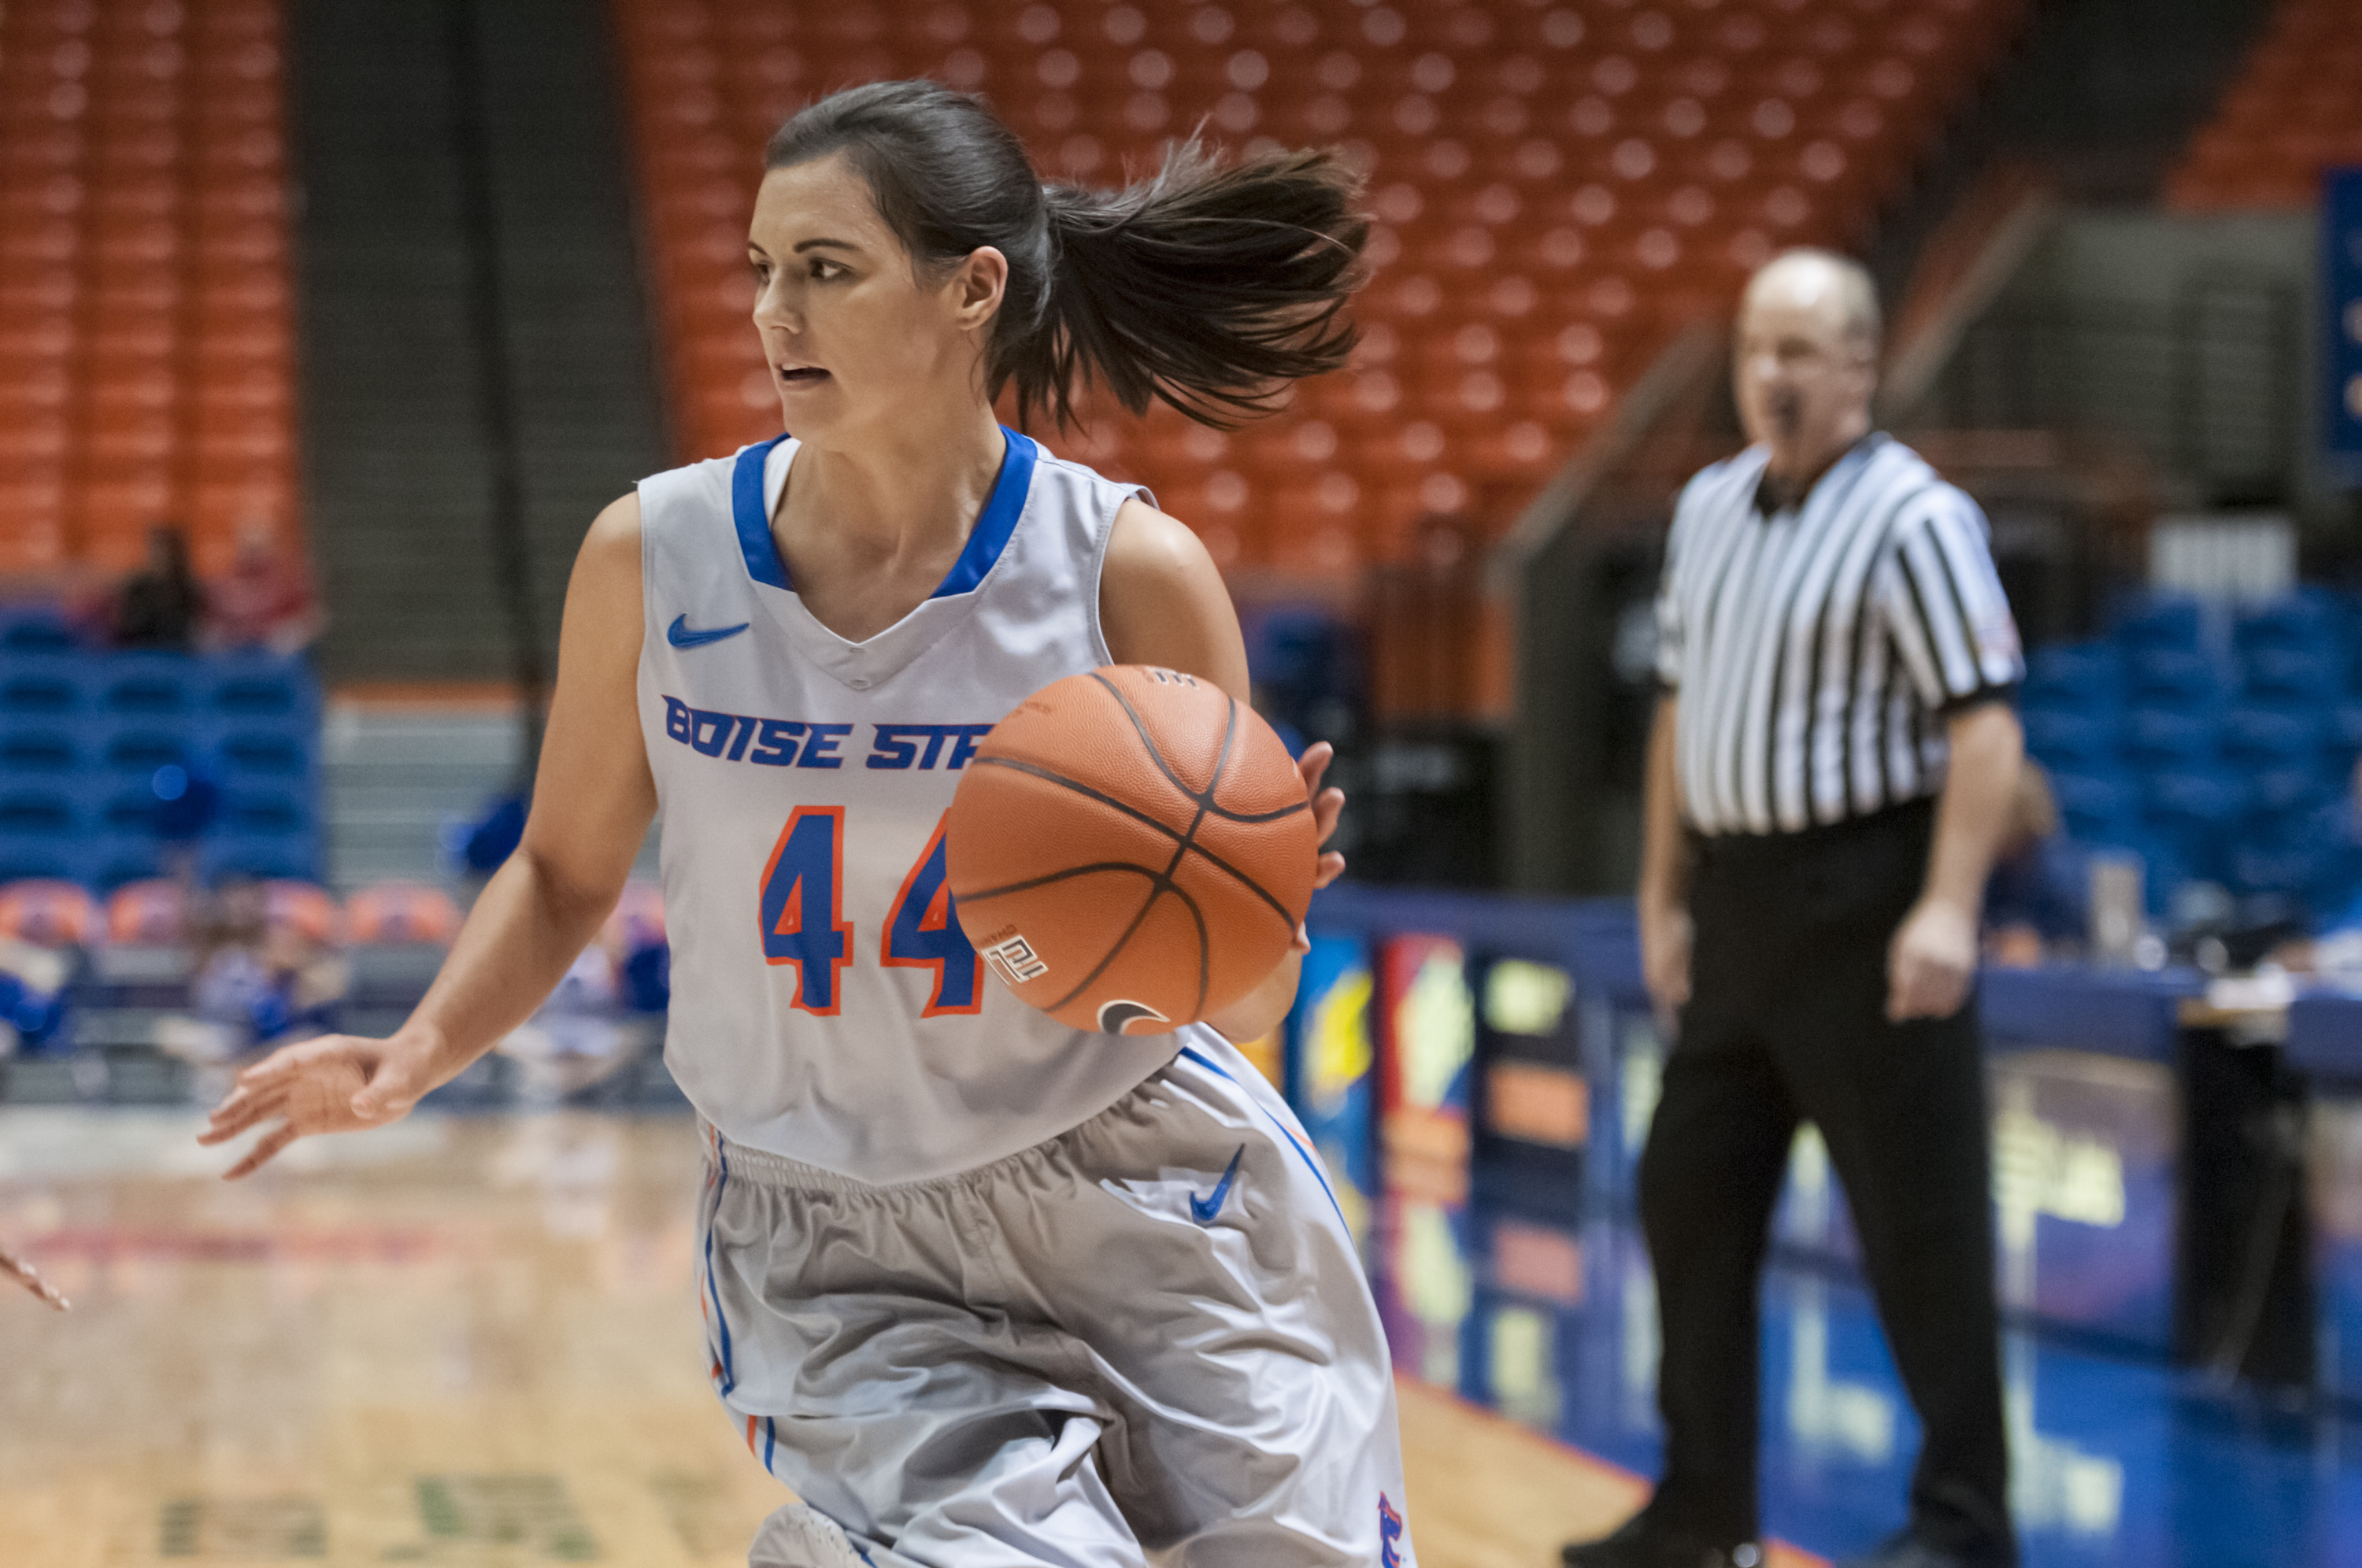 Brooke Pahukoa leads Broncos over last eight games averaging 15 points per game.